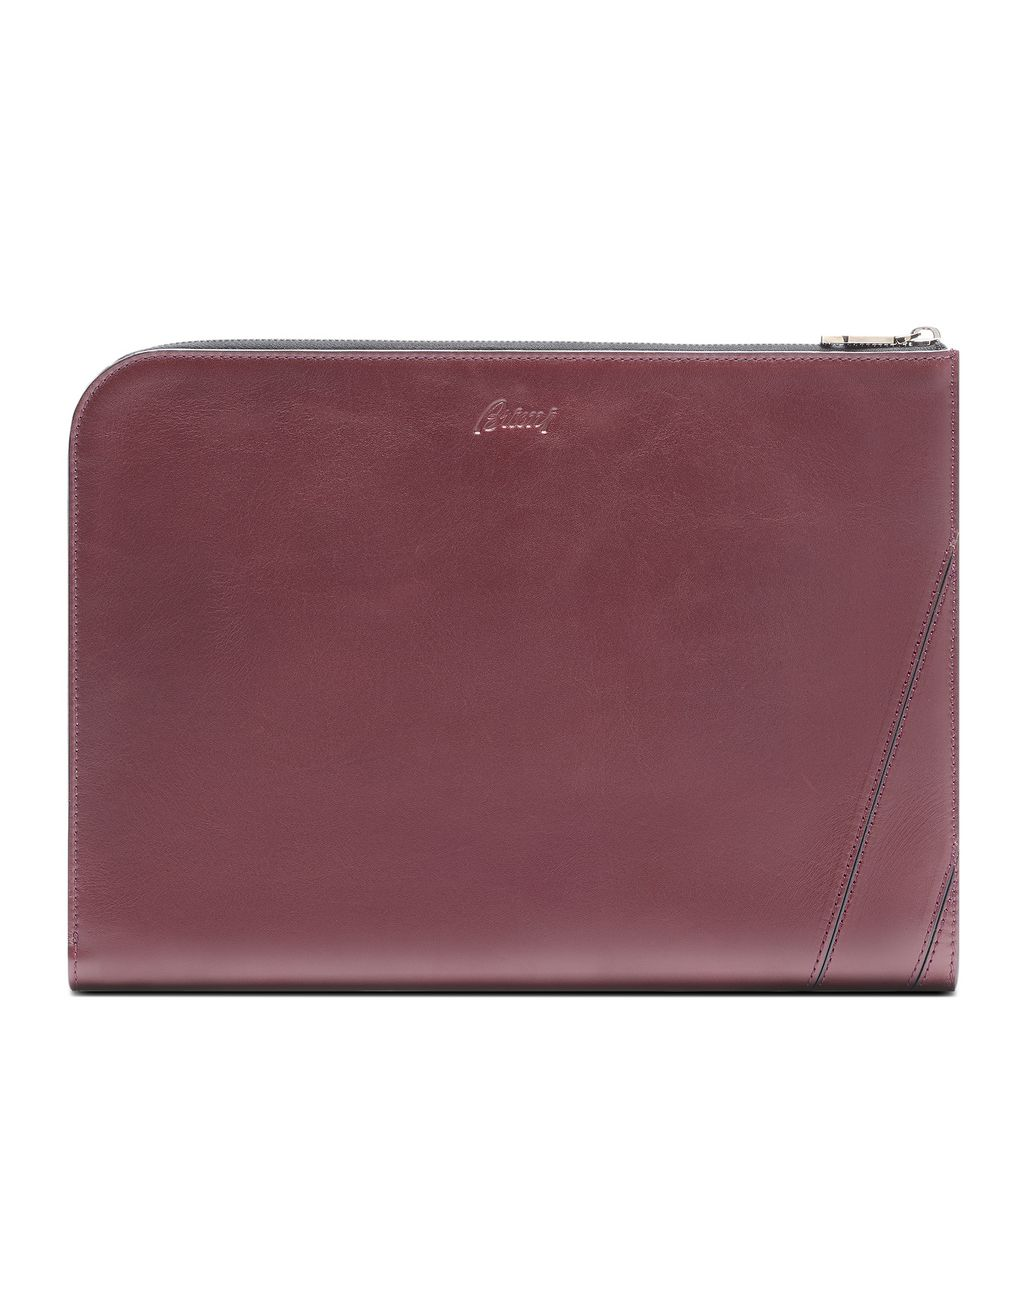 BRIONI Bordeaux Folio Document Holder Leather Goods [*** pickupInStoreShippingNotGuaranteed_info ***] f